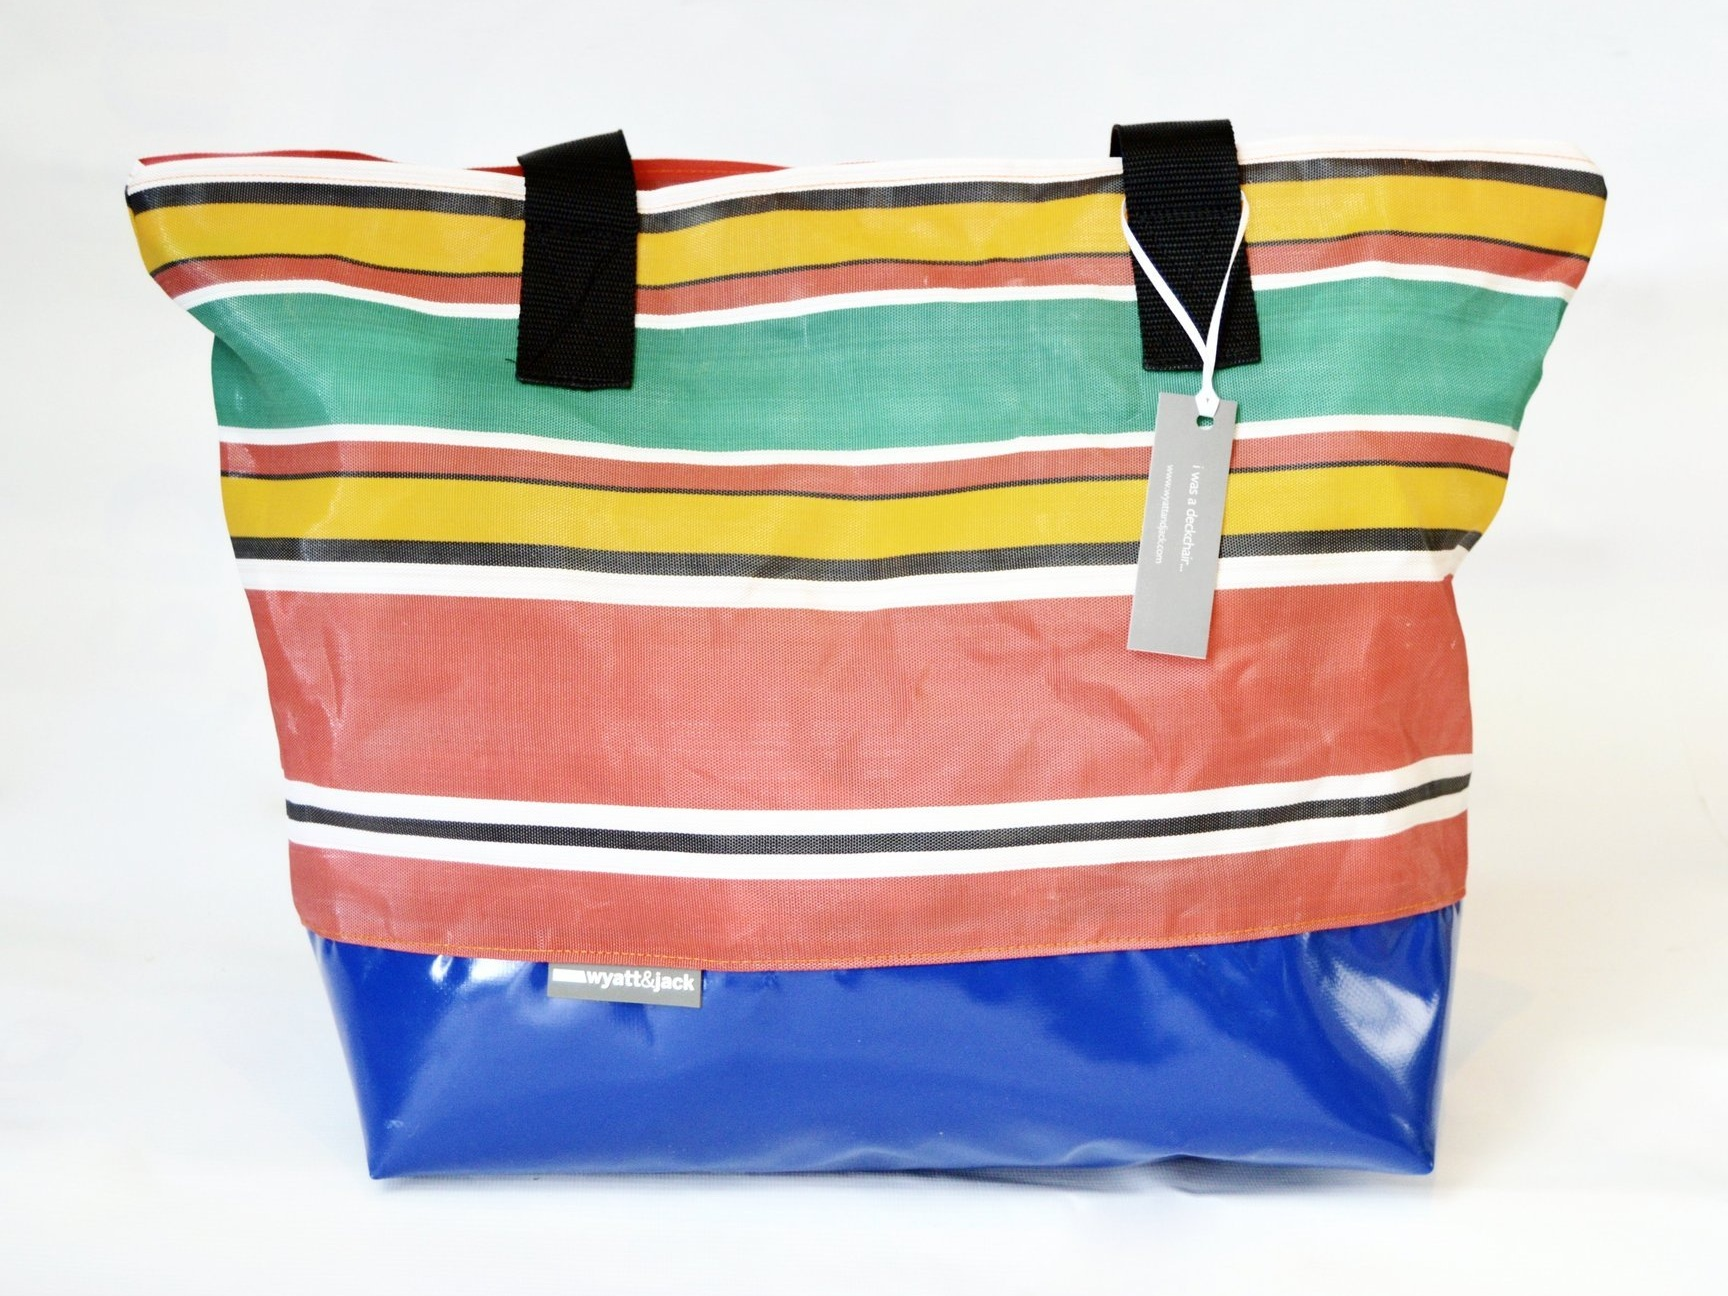 XL Deckchair Beach - Our deckchair totes have a naturally long line to them, cut to the original width of the chair fabric for less wasteYour order will contain a mix of stripes from beaches around the UK.Please specify the colour base you would like us to add to your bags, from the options belowDimensions: W 550mm x H 550-600mm